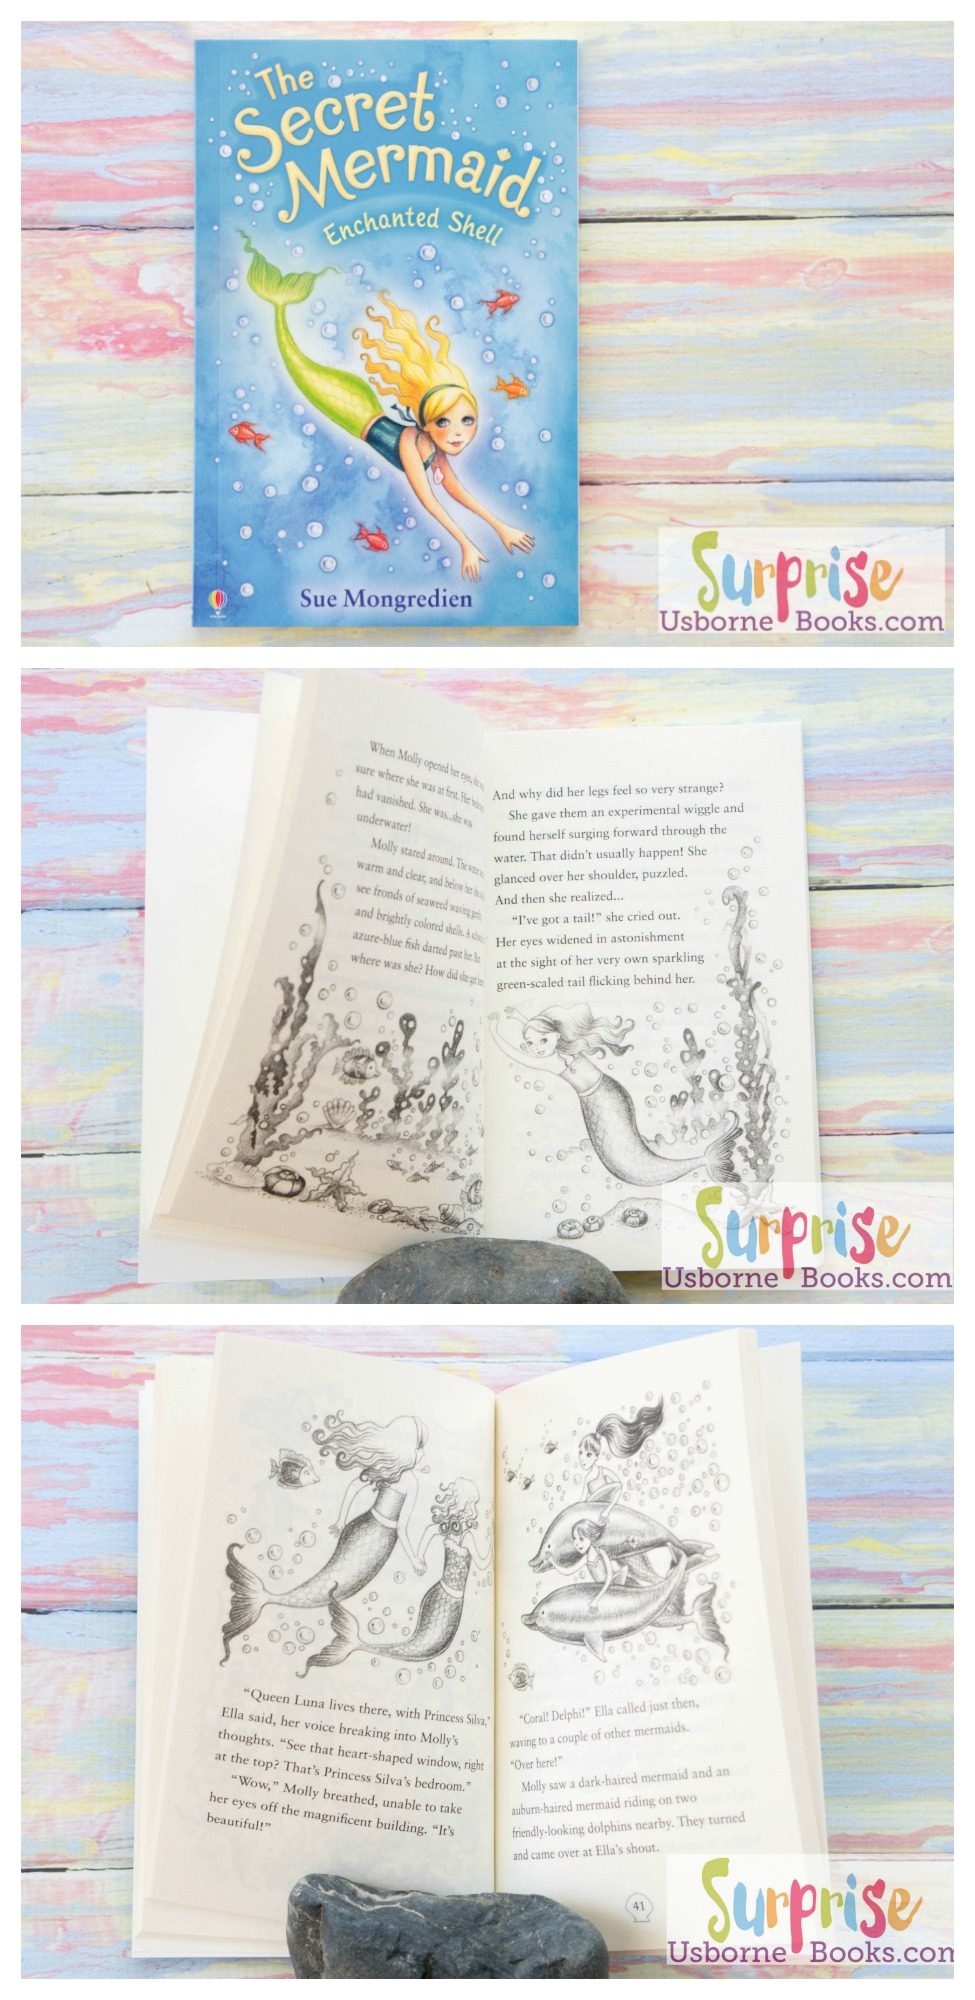 The Secret Mermaid Enchanted Shell - Surprise Usborne Books